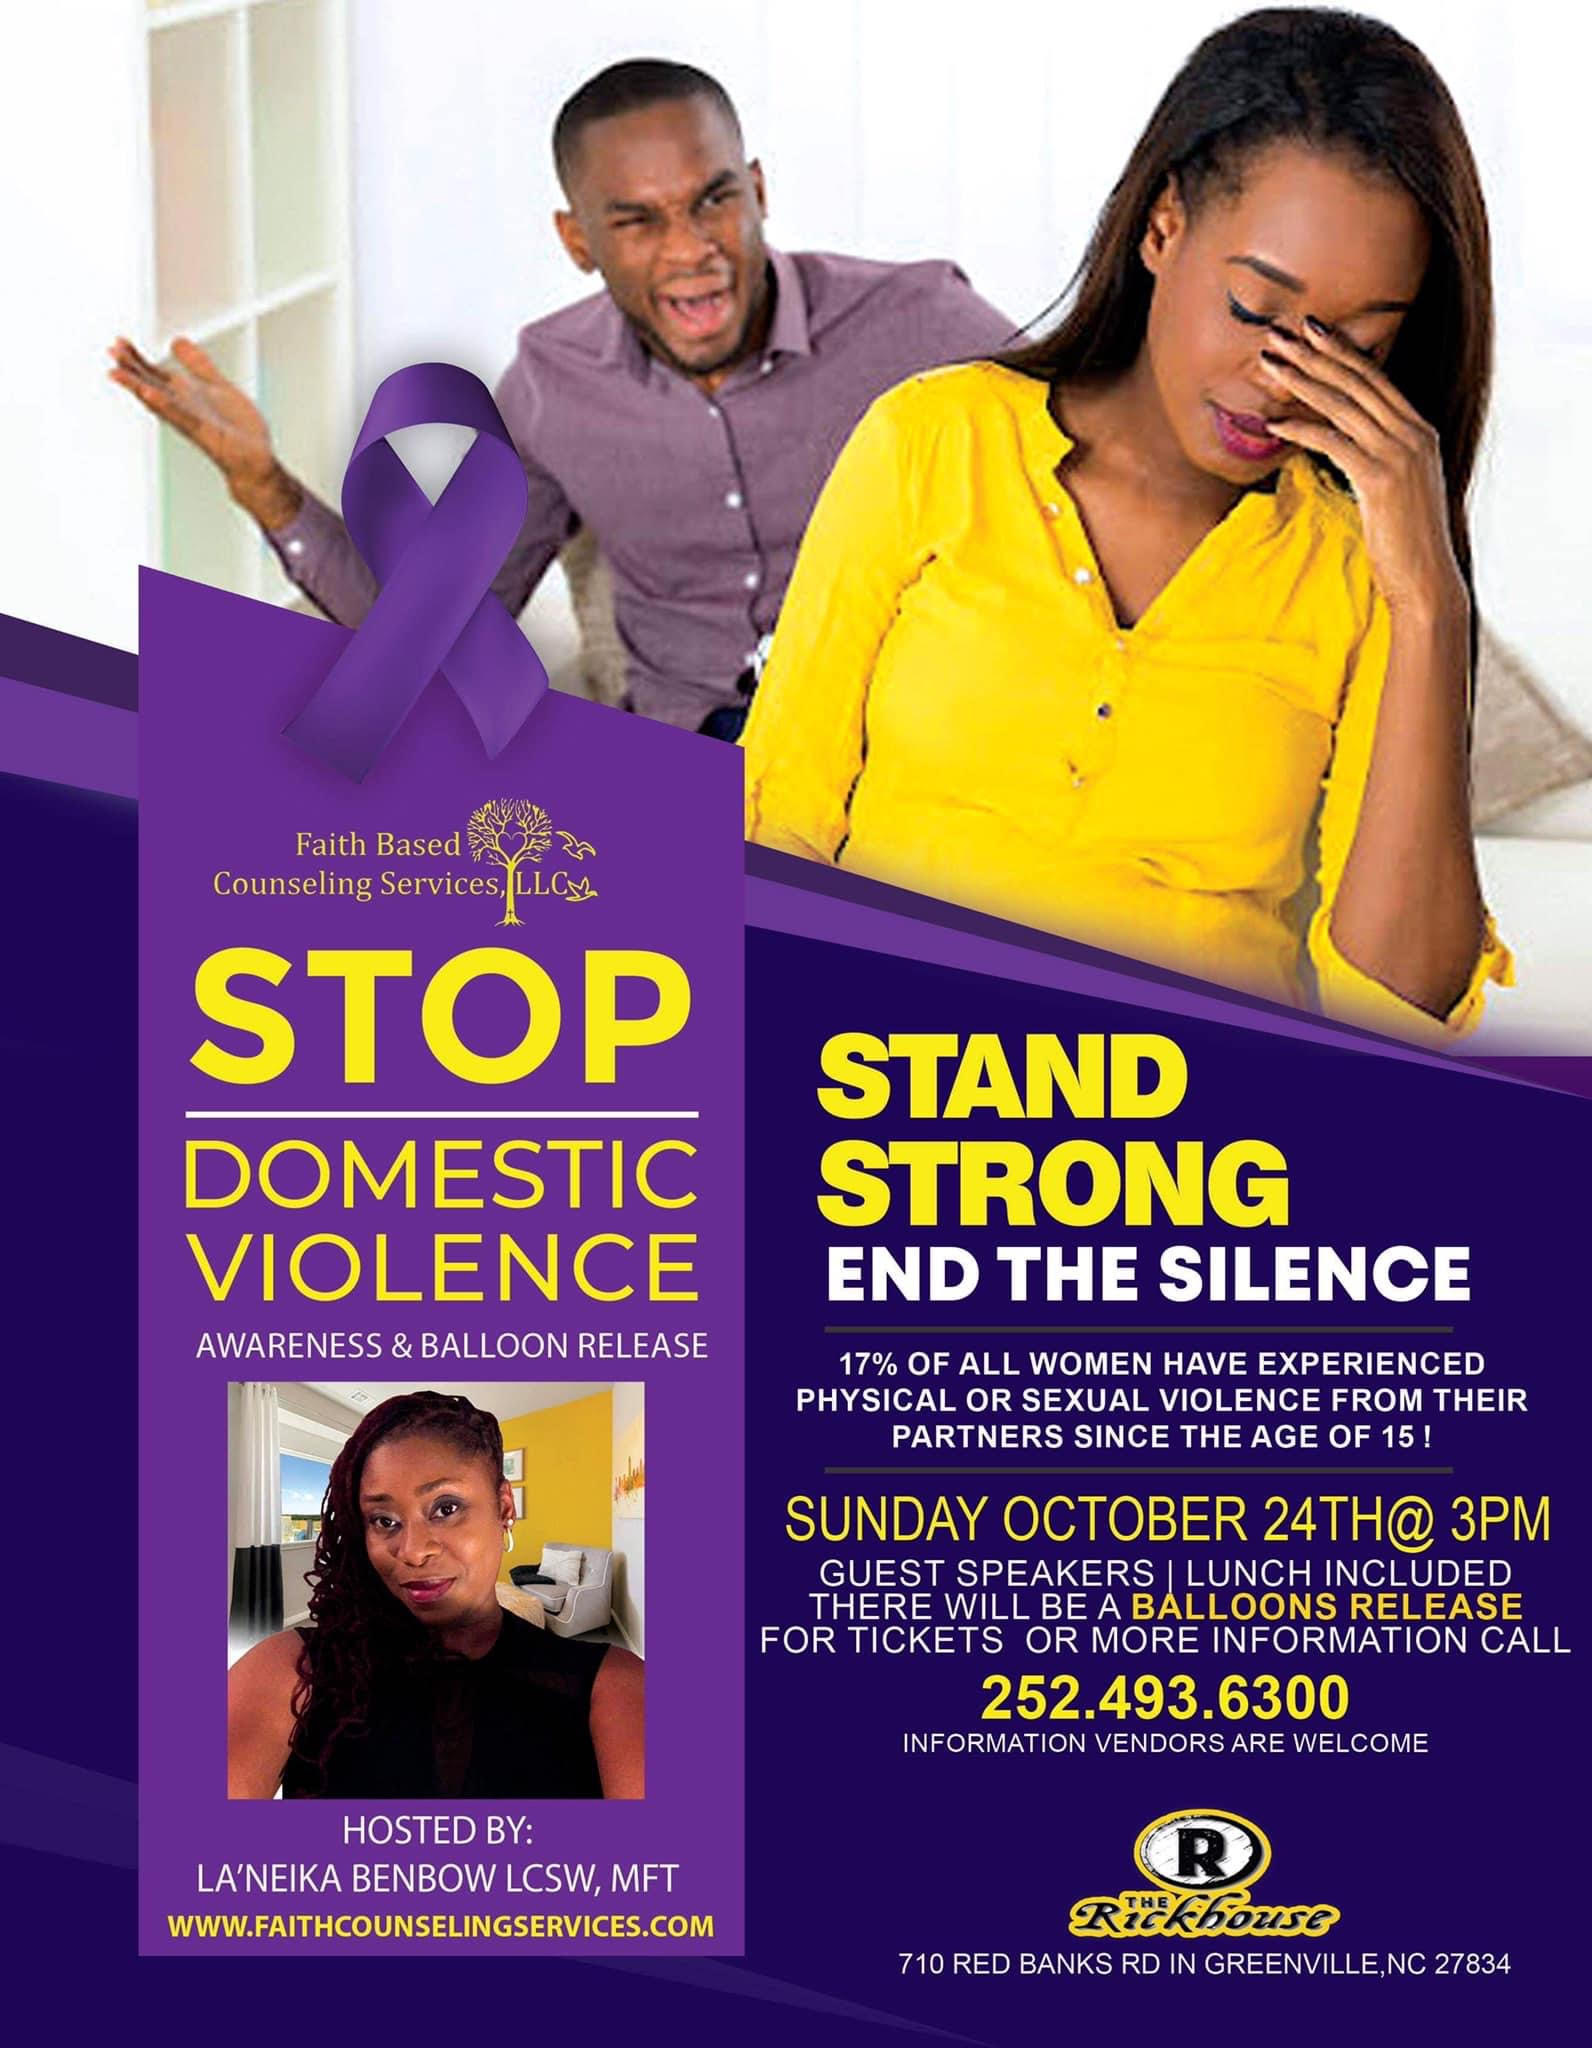 STOP Domestic Violence Awareness & Balloon Release